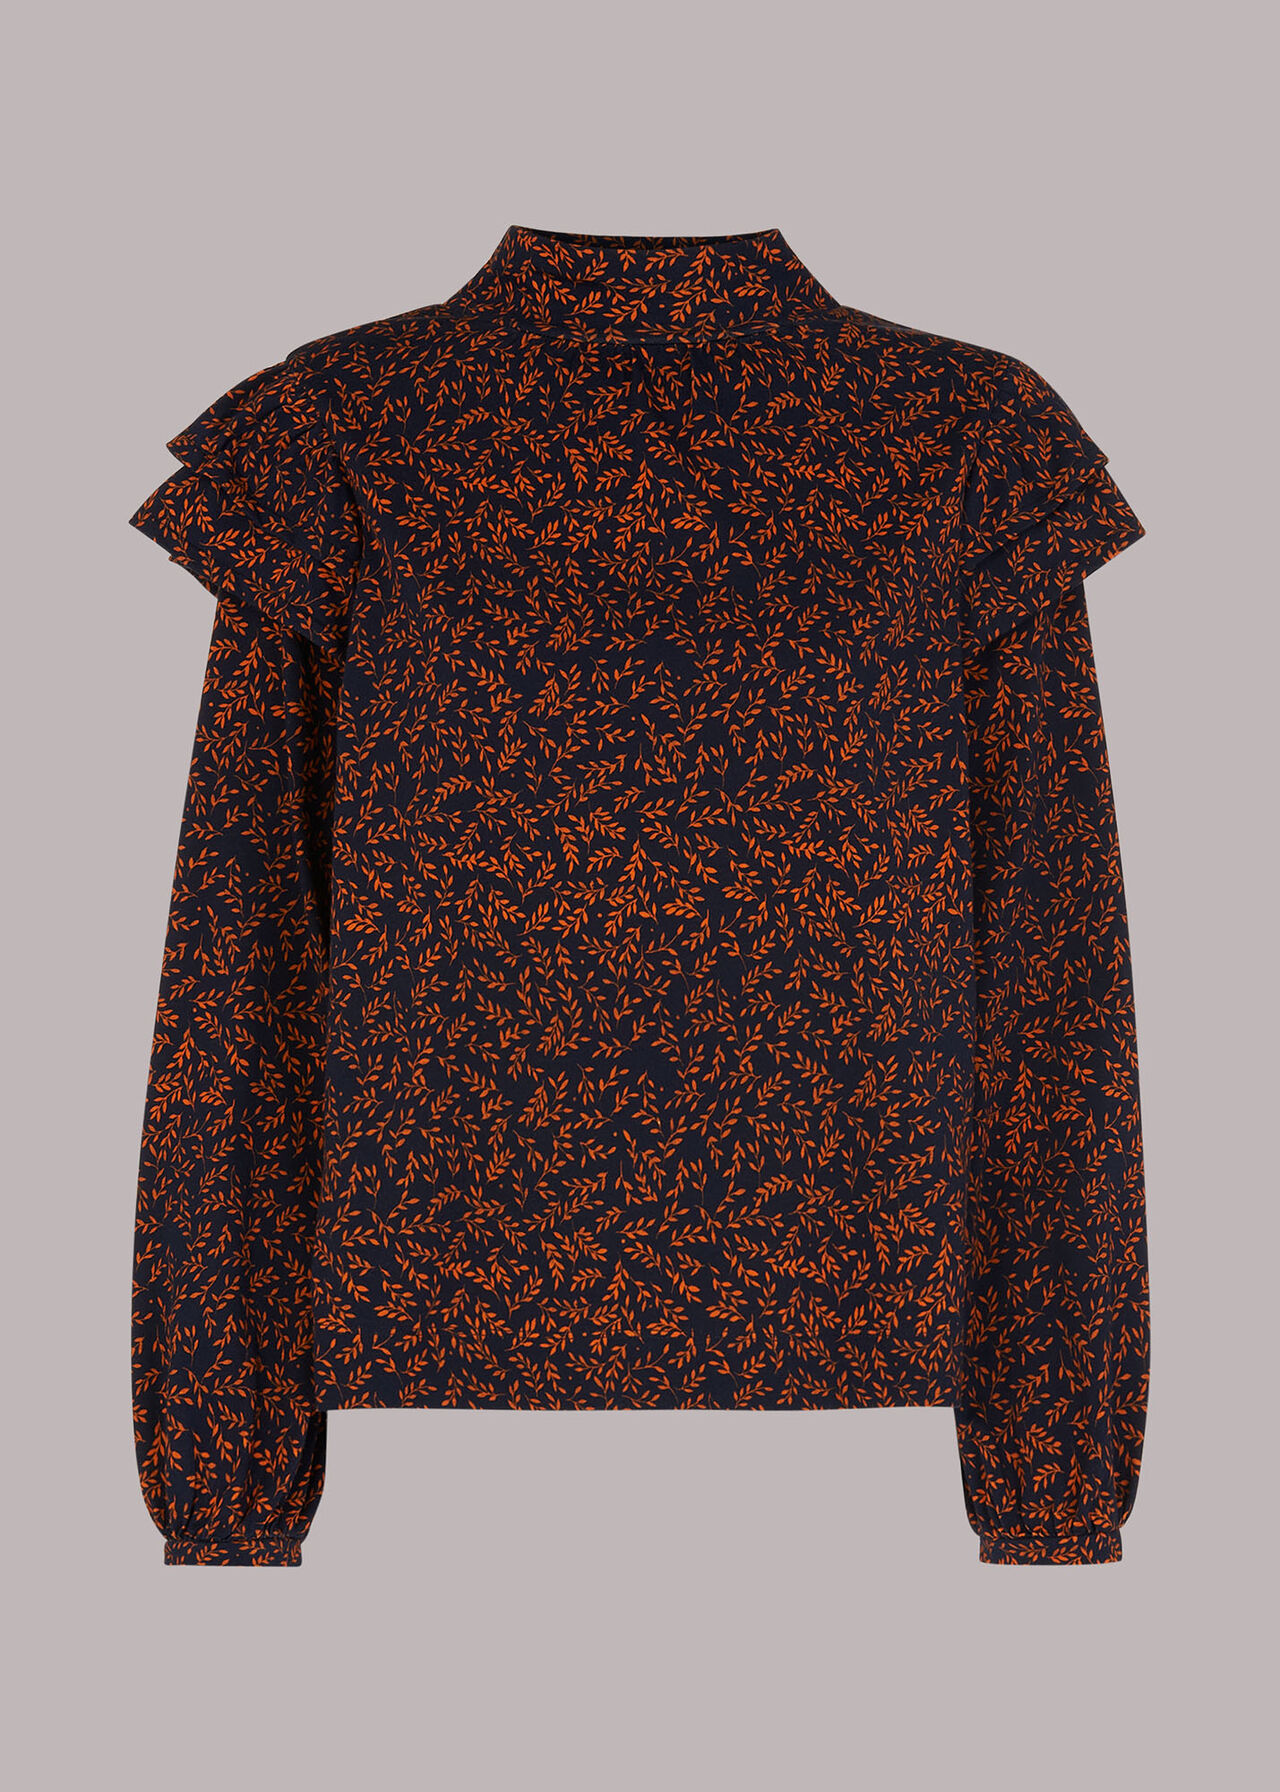 Autumn Leaves High Neck Top